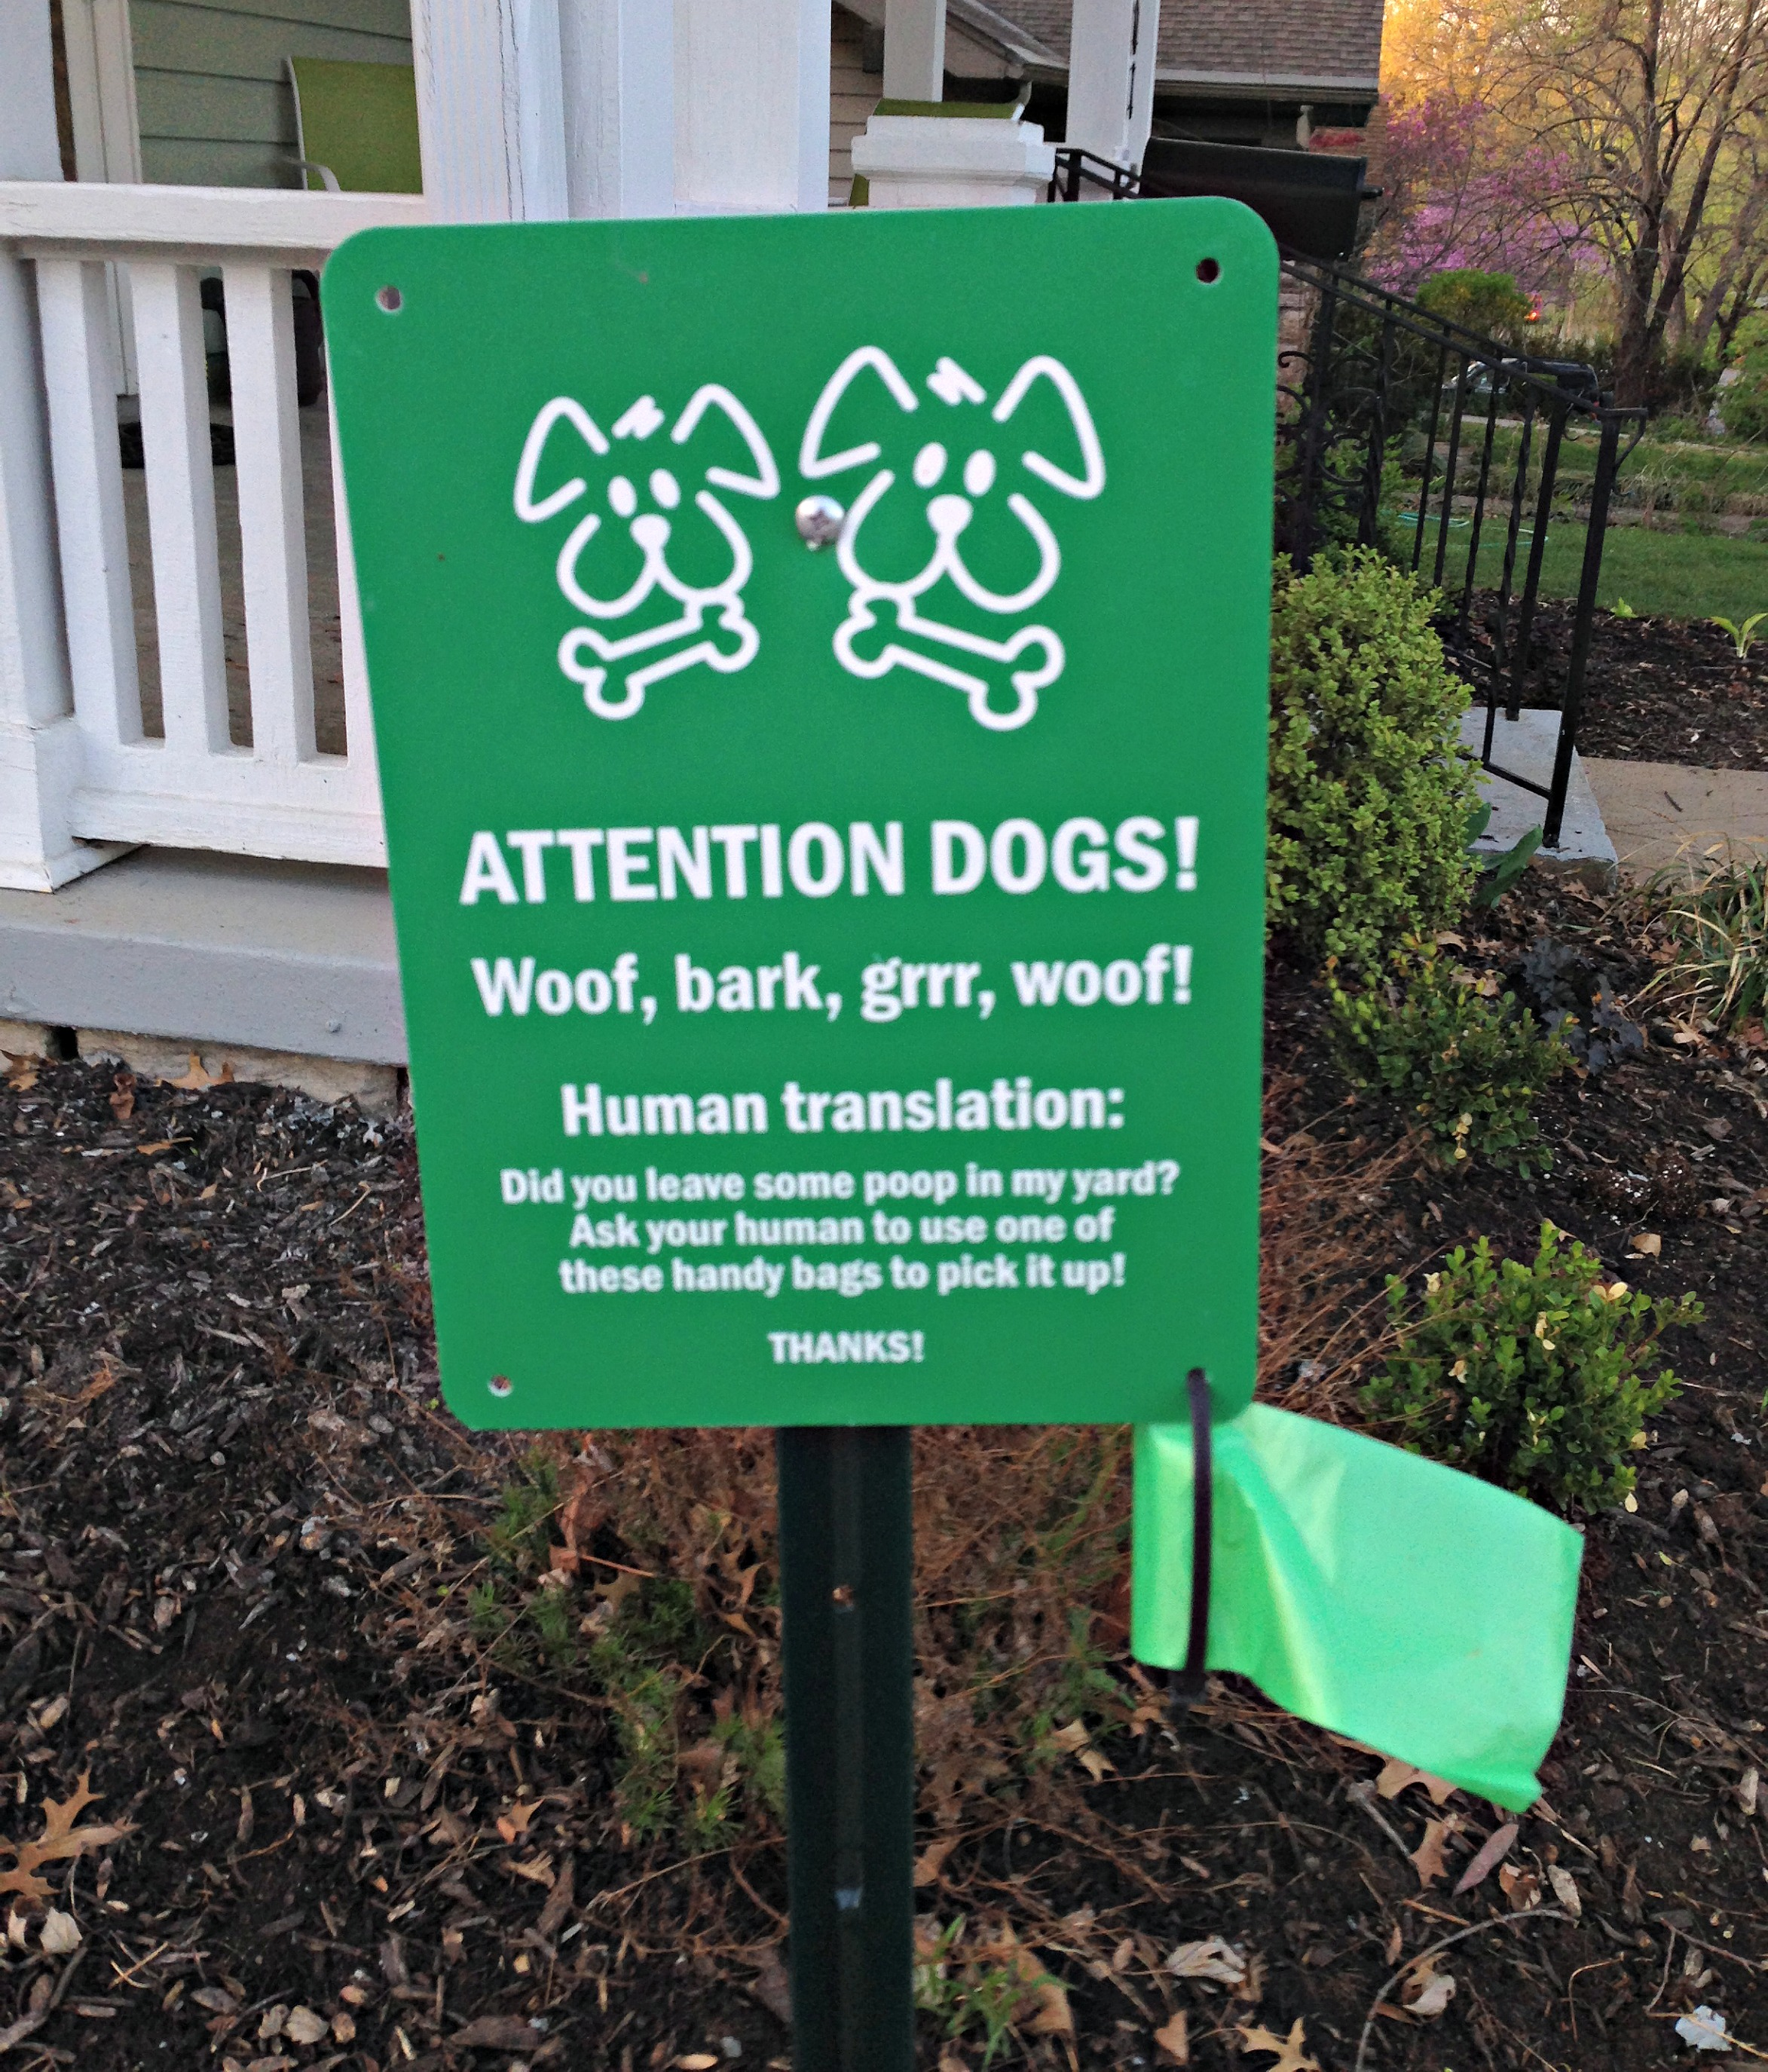 How Can I Stop Dogs From Pooping In My Yard